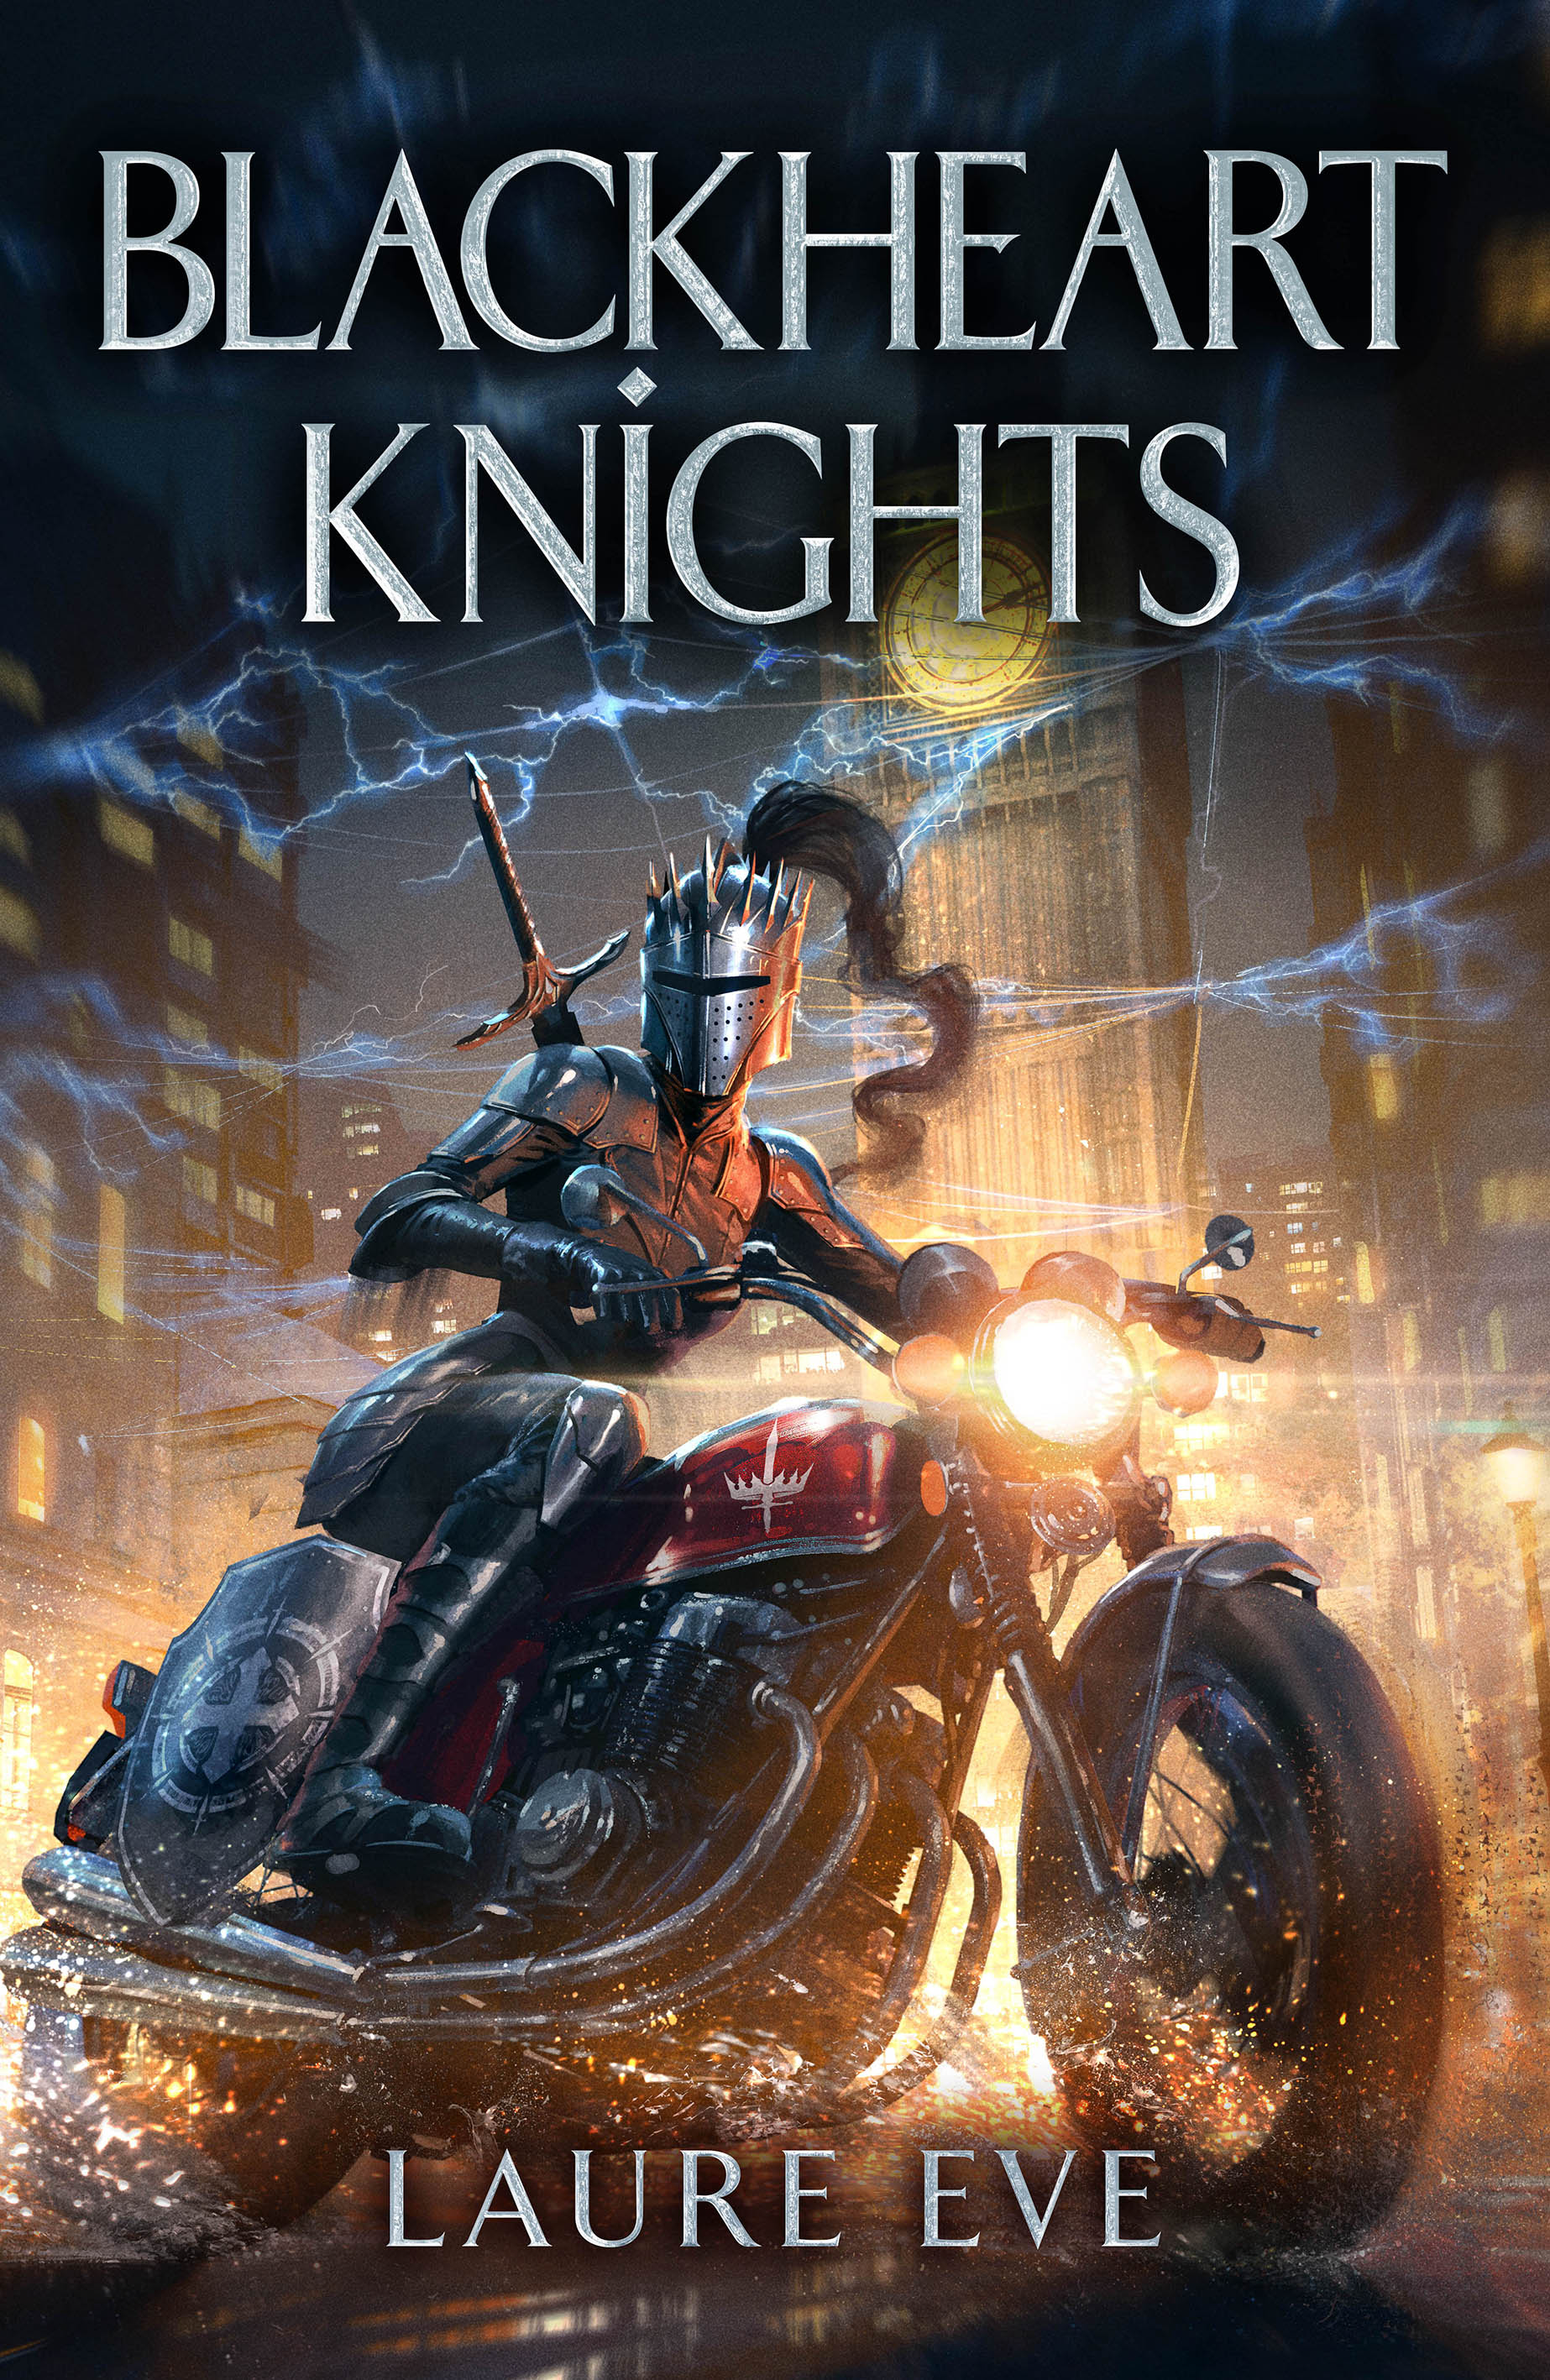 Blackheart Knights releases May 13th 2021